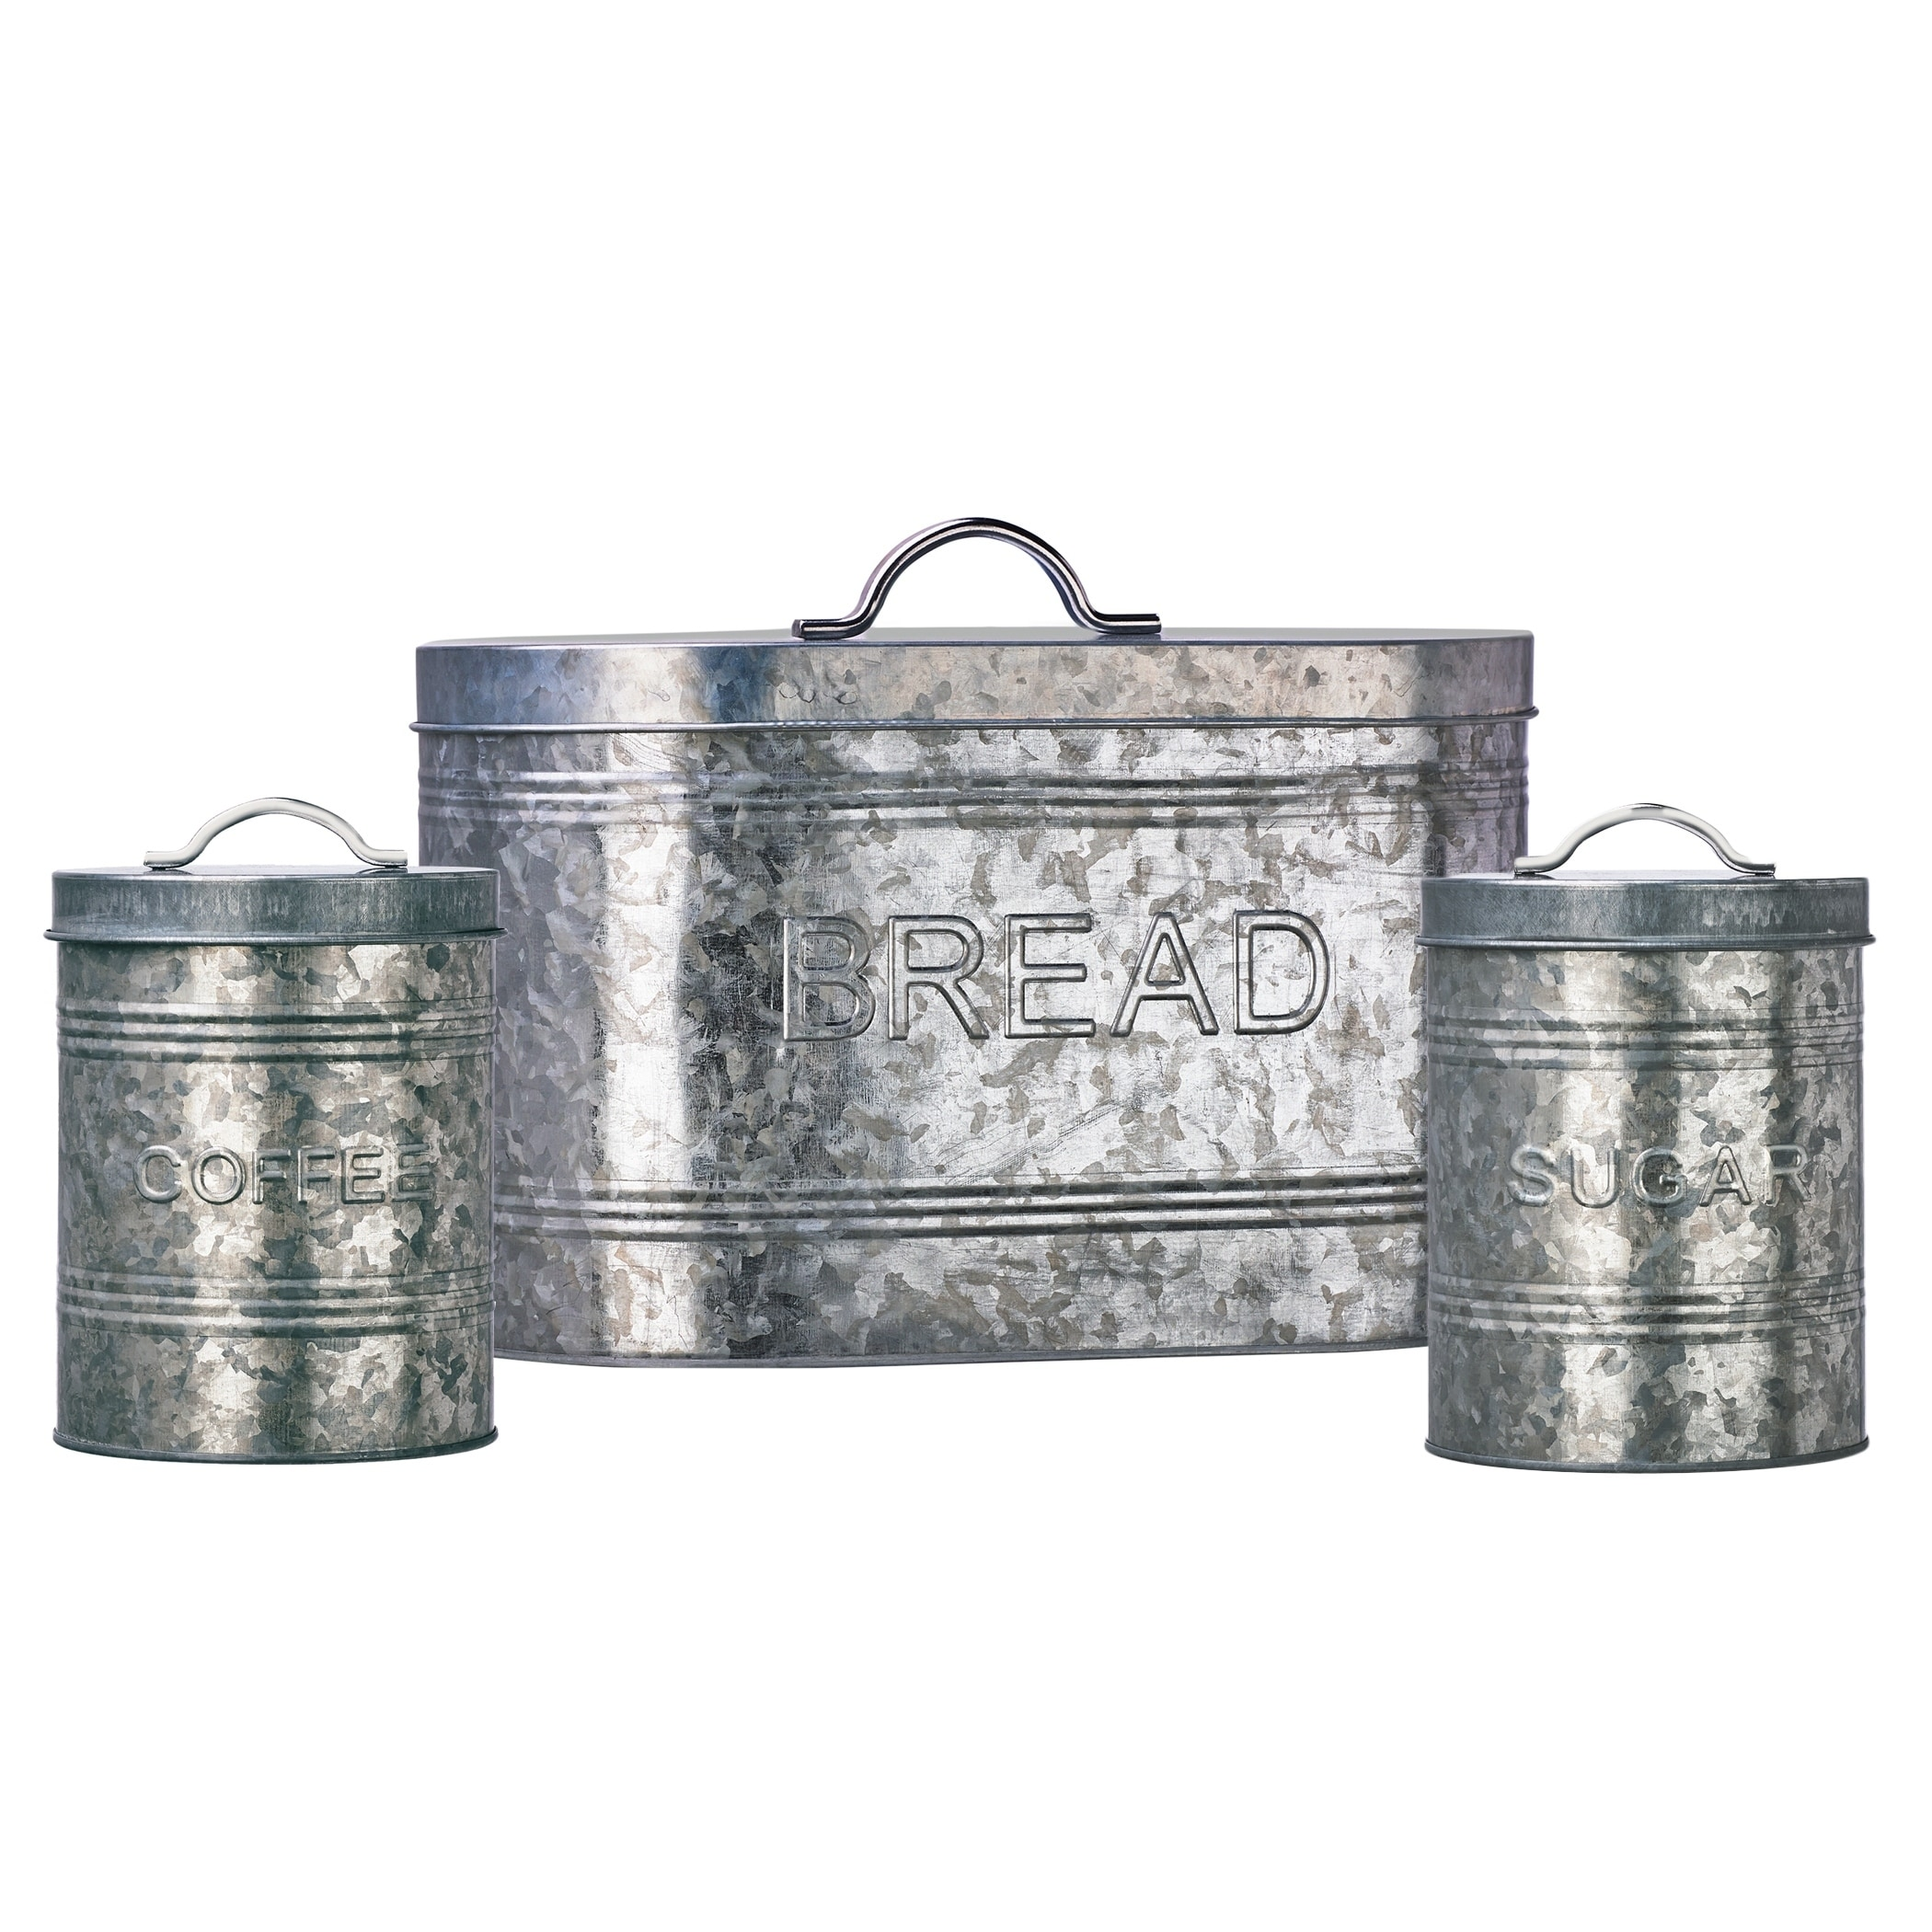 Rustic Kitchen Galvanized Metal Storage Canisters, Assorted Set of 3  (Coffee, Sugar, Bread)